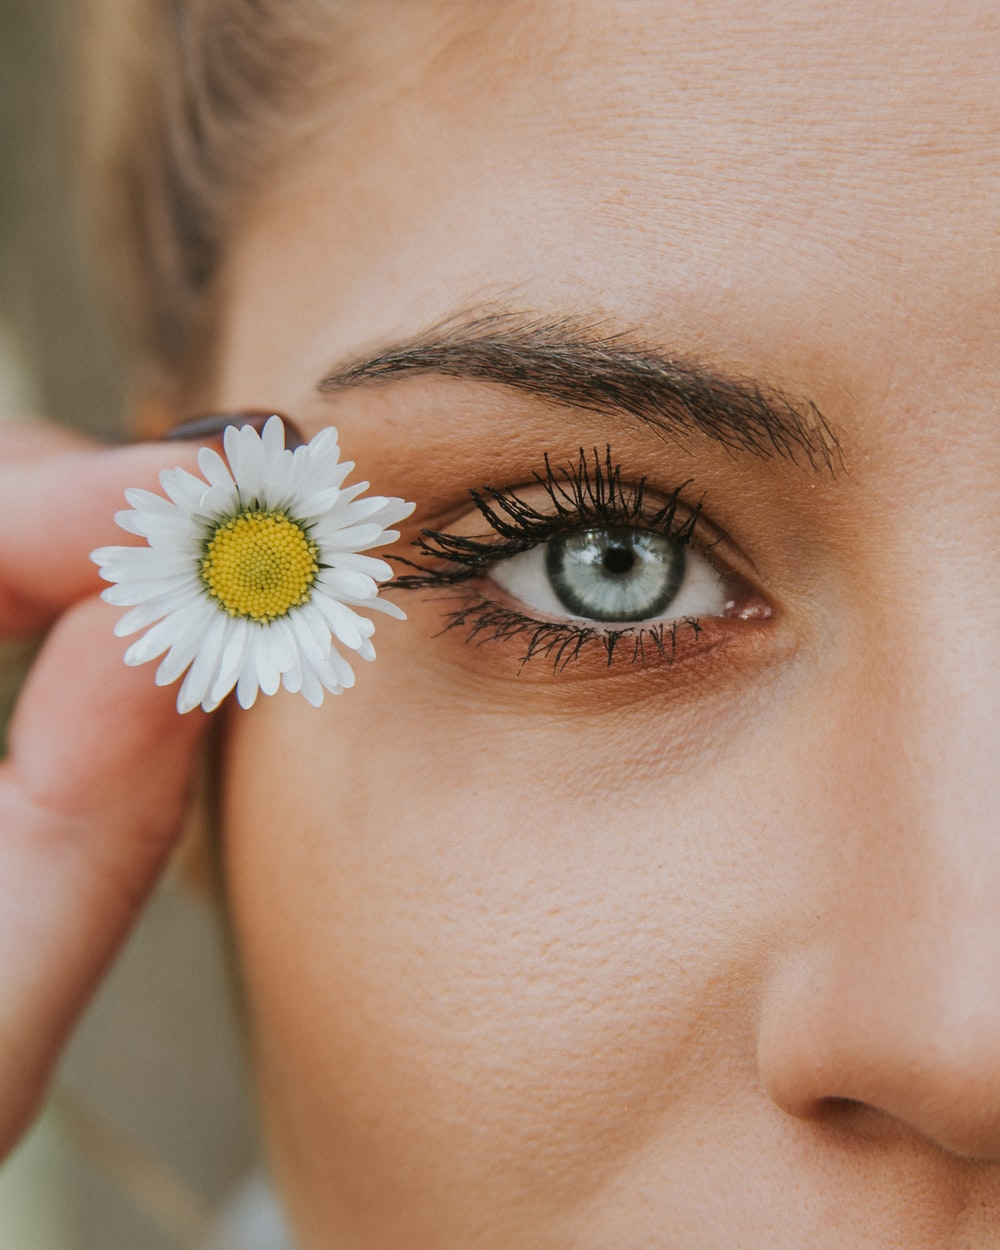 Portrait Flower Eye And Woman Hd Photo By Angelos Michalopoulos